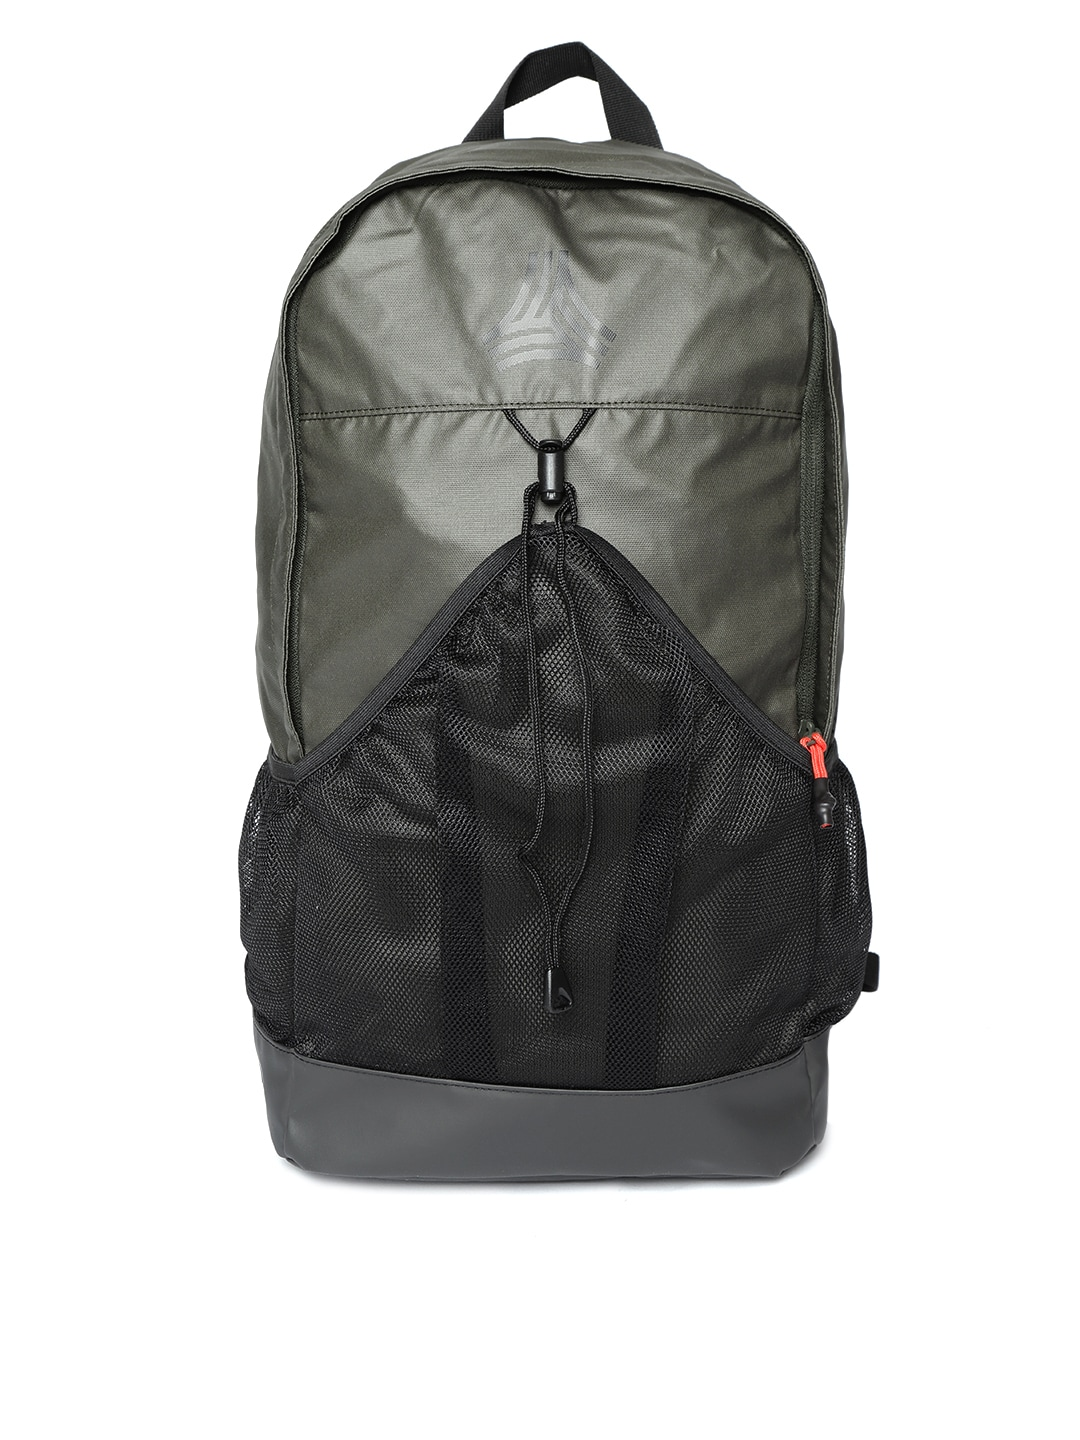 70be80f751f Olive Green Backpacks - Buy Olive Green Backpacks online in India